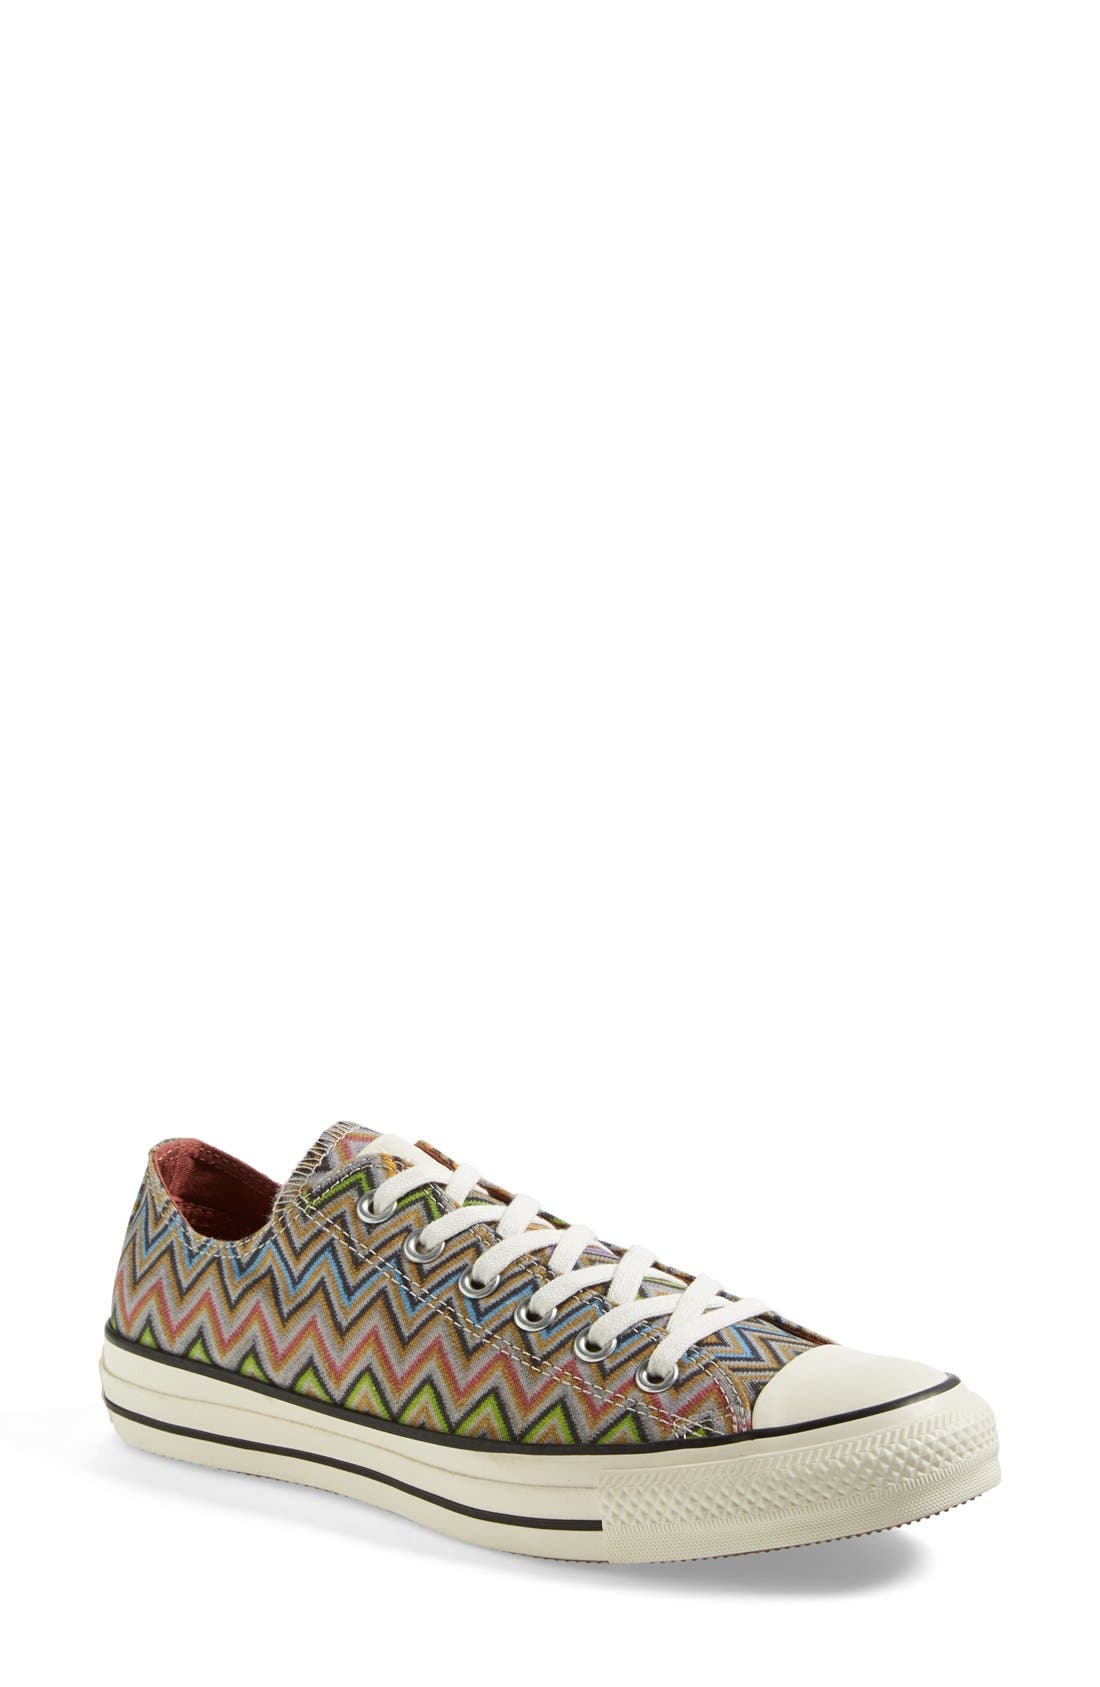 x Missoni Chuck Taylor<sup>®</sup> All Star<sup>®</sup> Low Sneaker, Main, color, 020